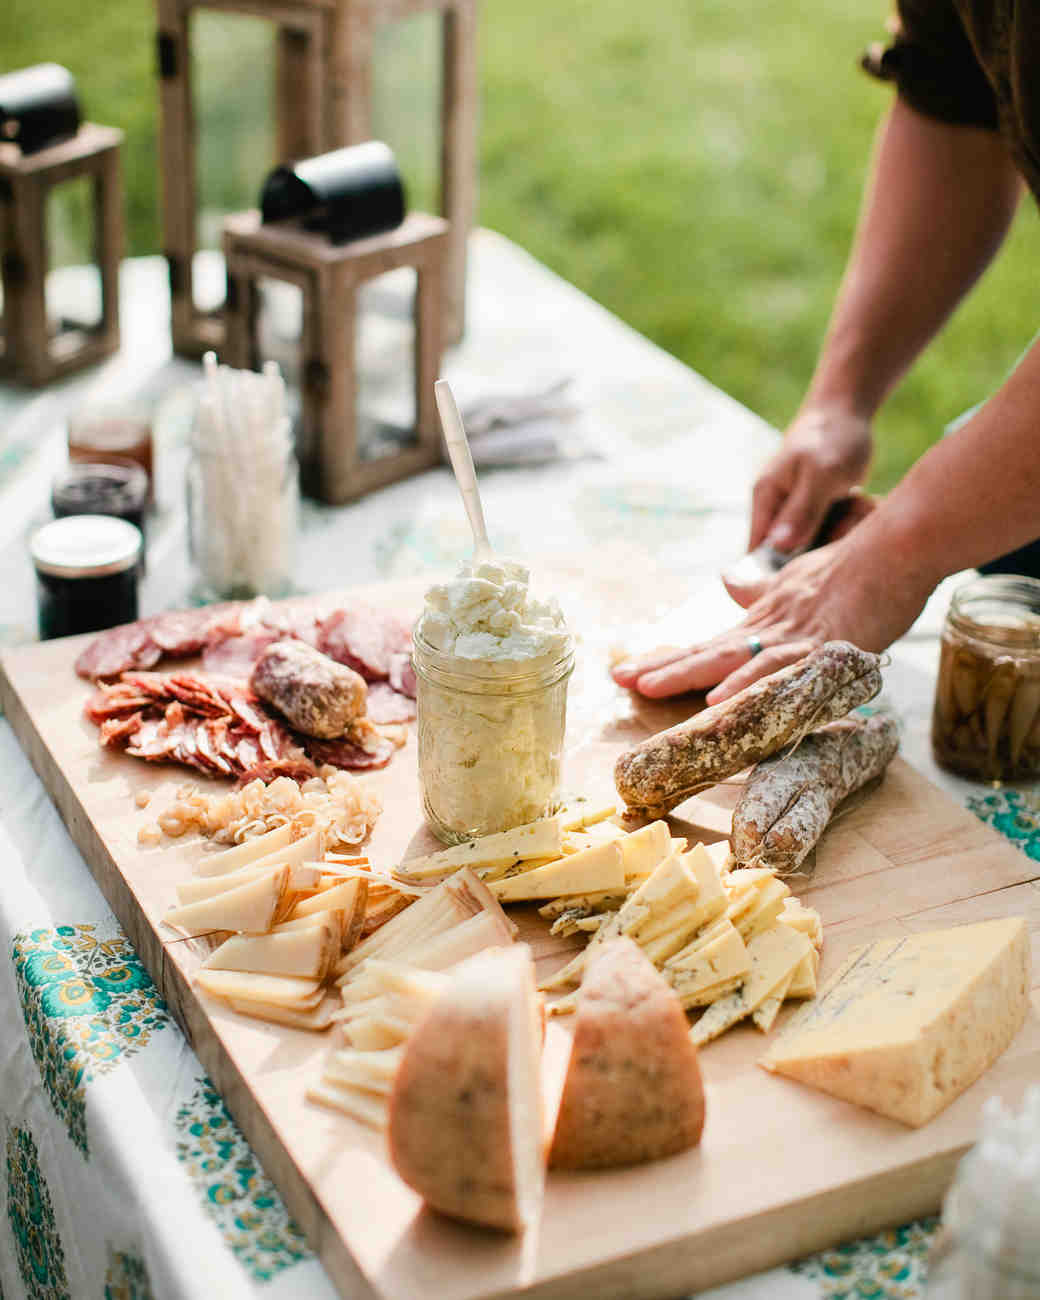 Southern Wedding Reception Food: Sally And Christian's Rustic Outdoor Rehearsal Dinner At